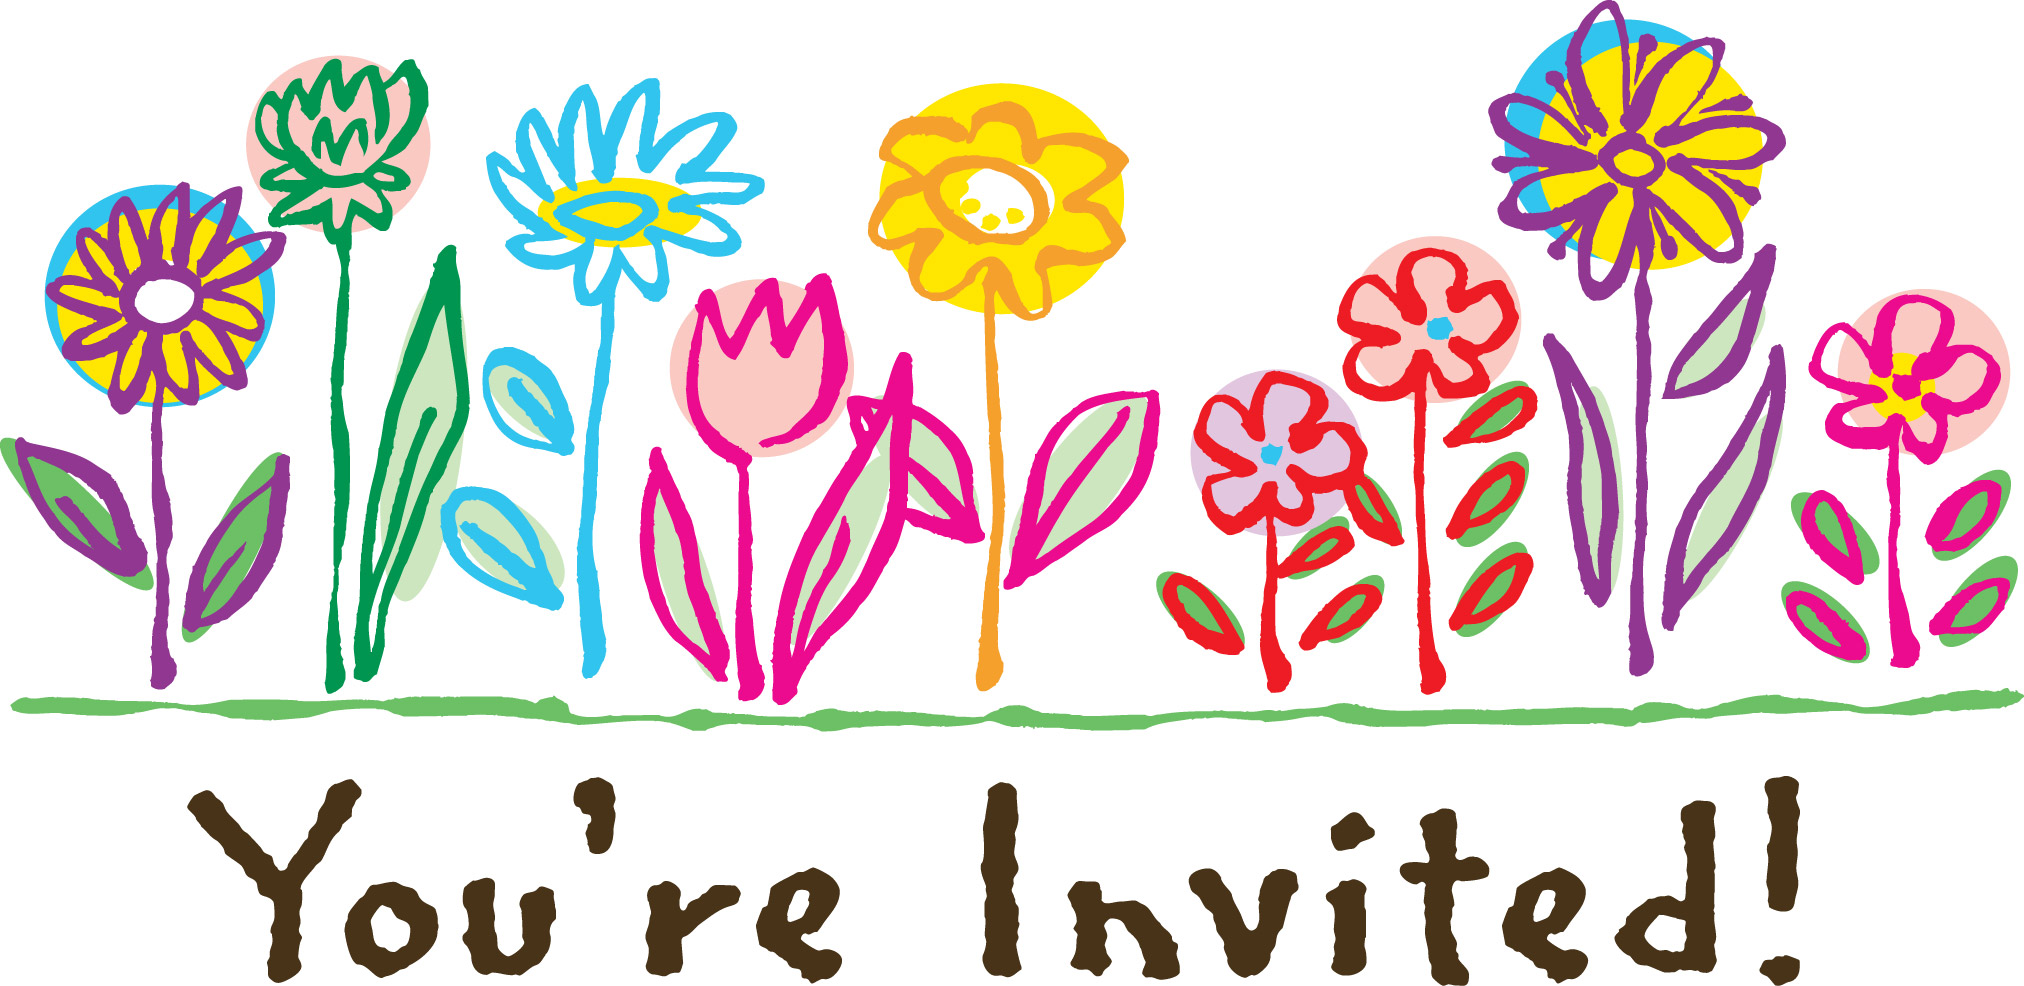 Fun clipart invited Savoronmorehead Clipart Invited Free information